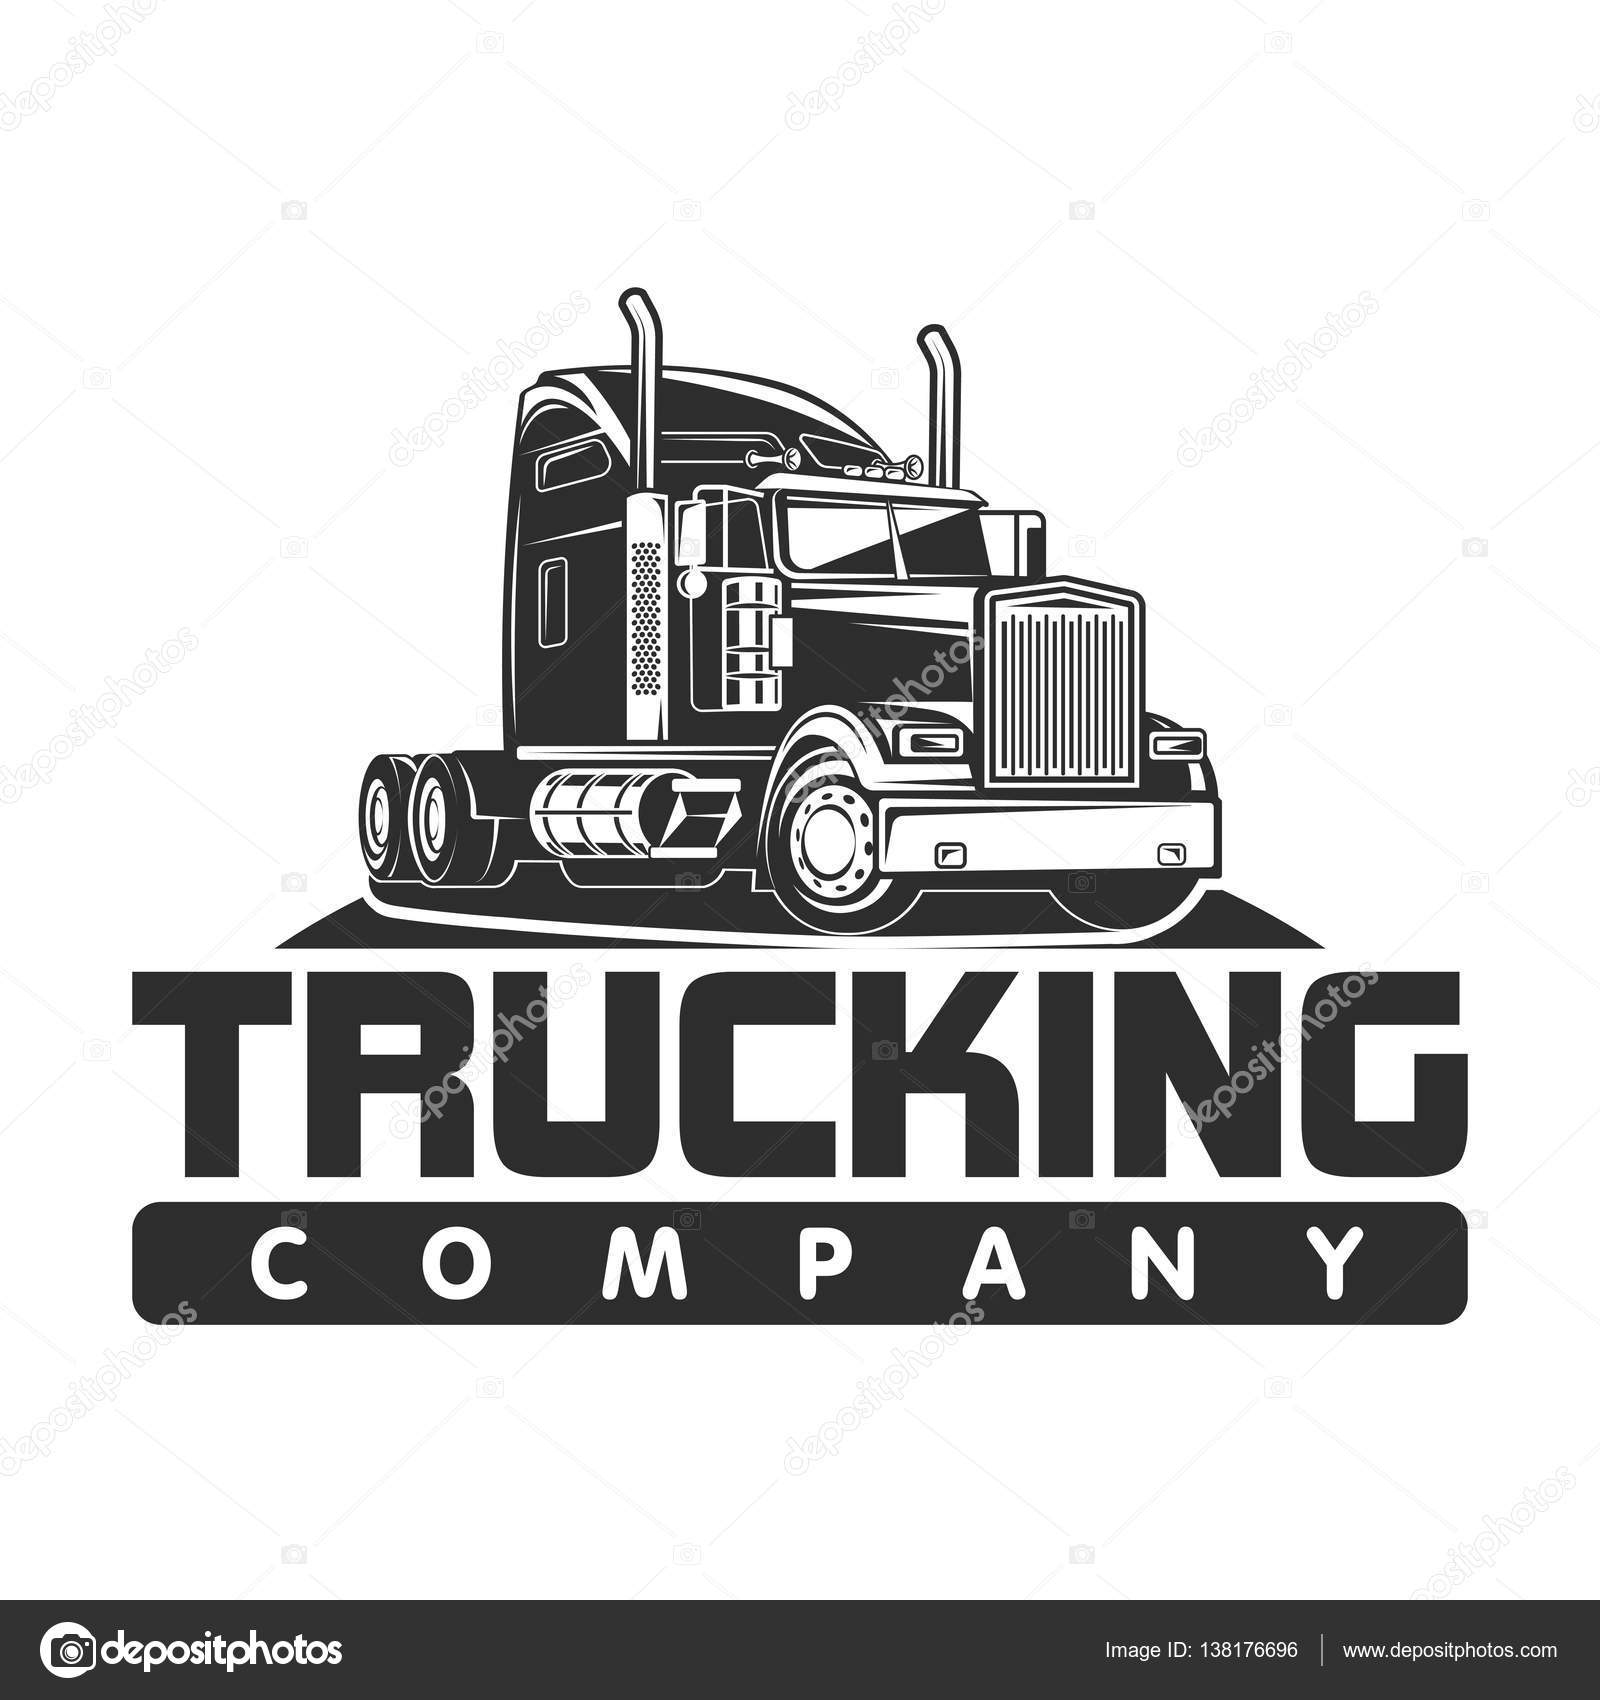 trucking company logos  trucking company logo black and white vector illustration — Stock ...